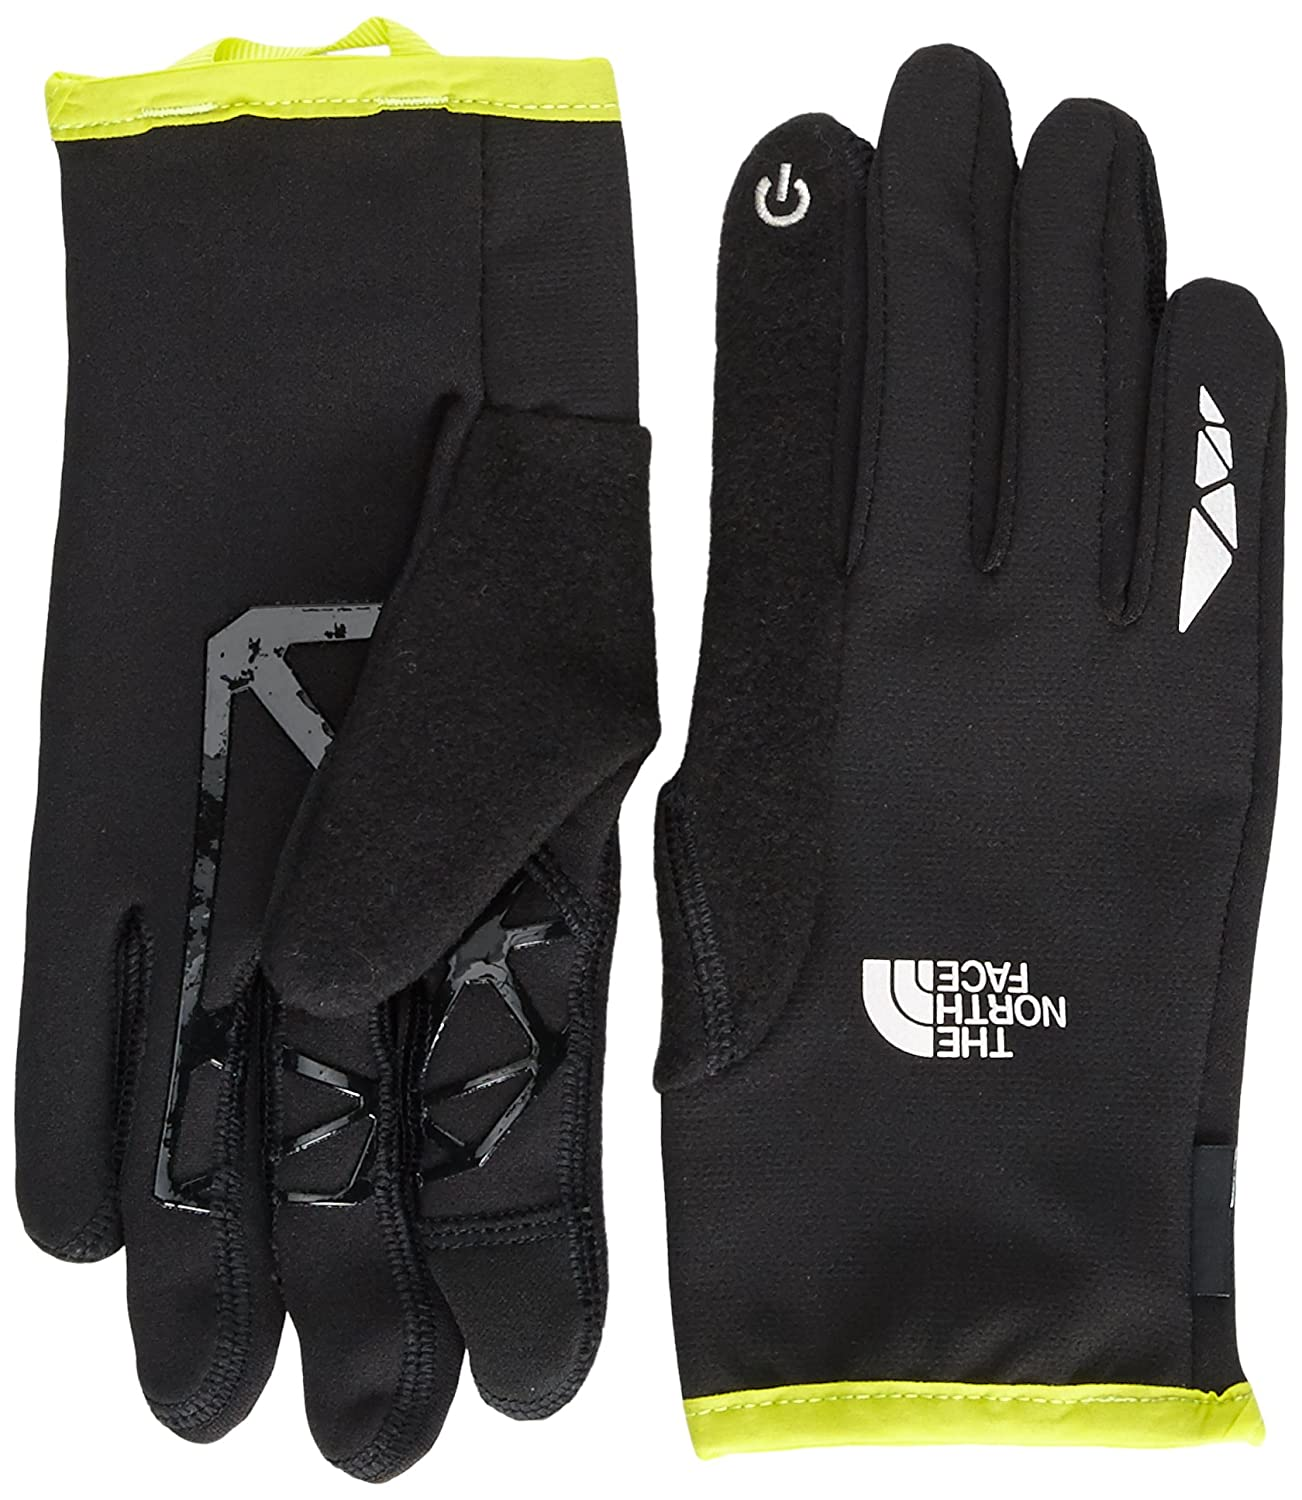 THE NORTH FACE Runners 2 Etip Glove - Guantes unisex, color negro, talla XS A6N4JK3